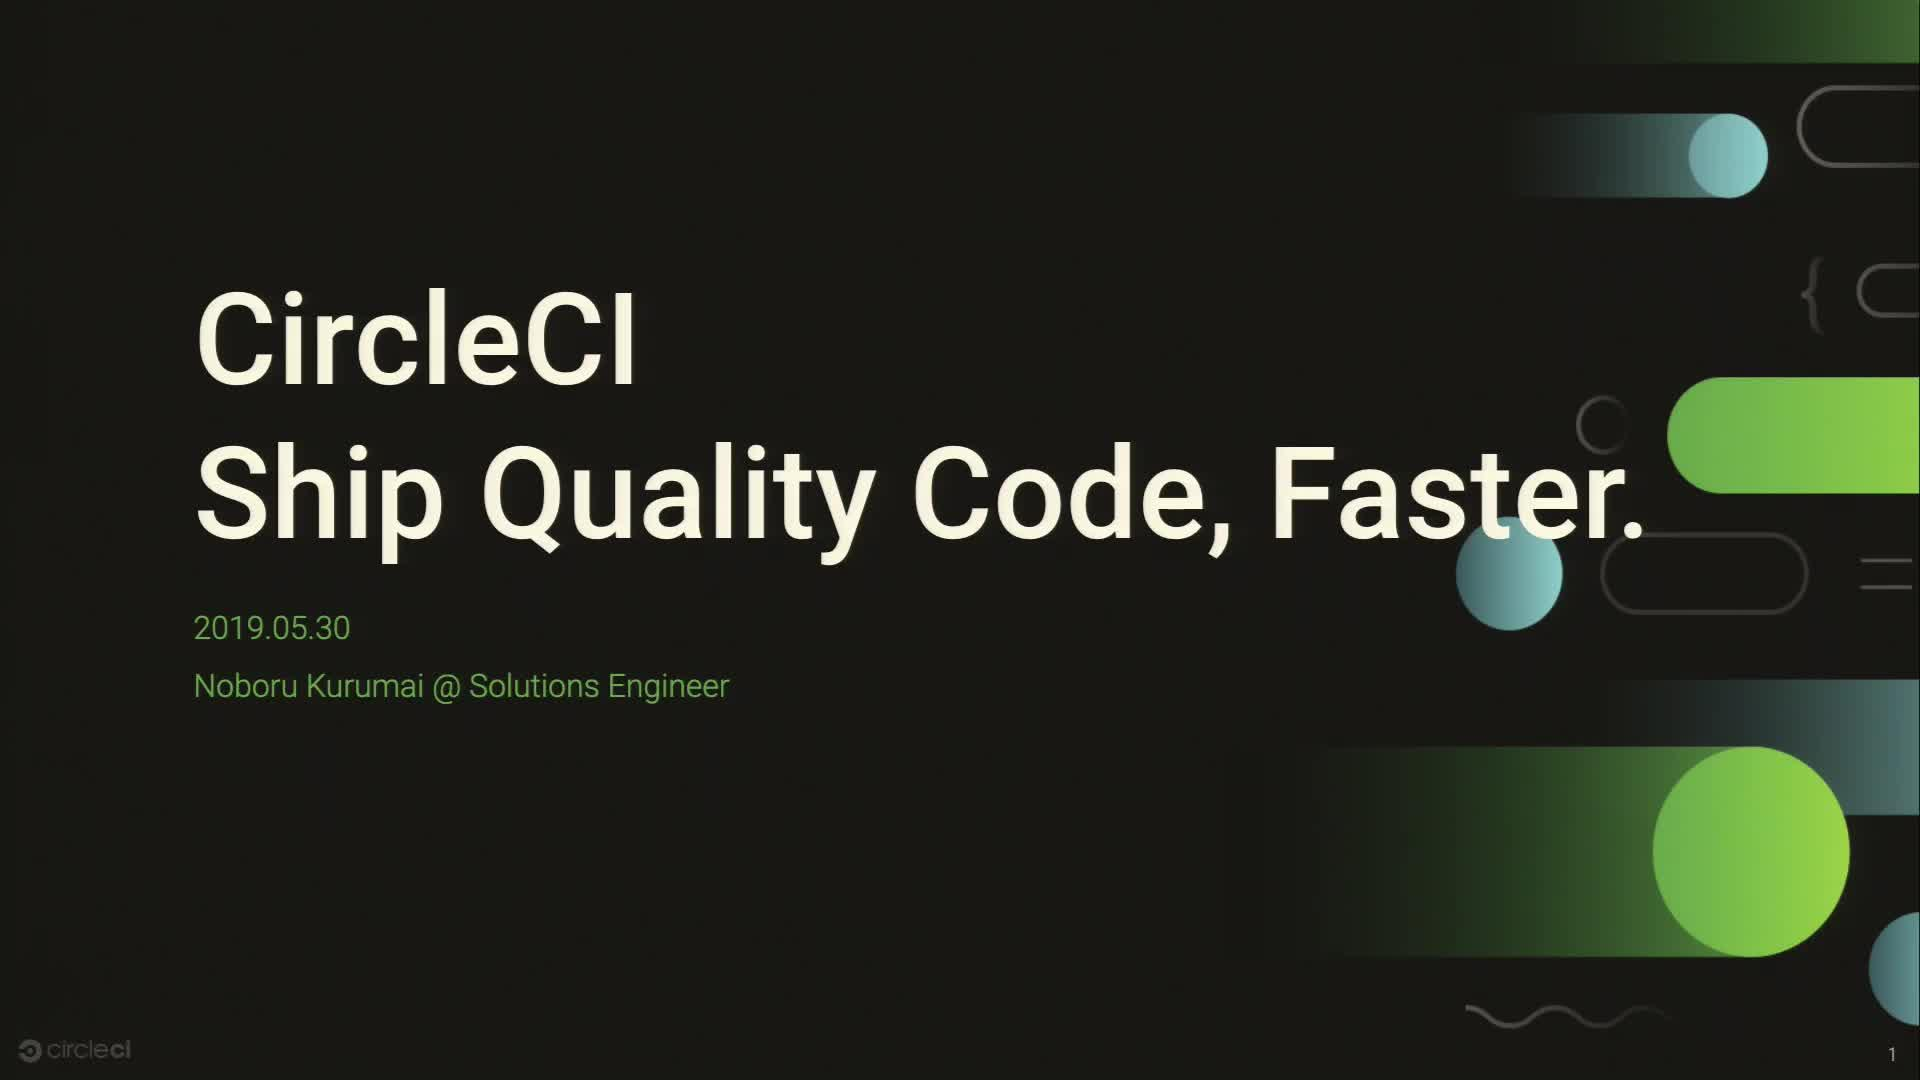 CircleCI Ship Quality Code, Faster.